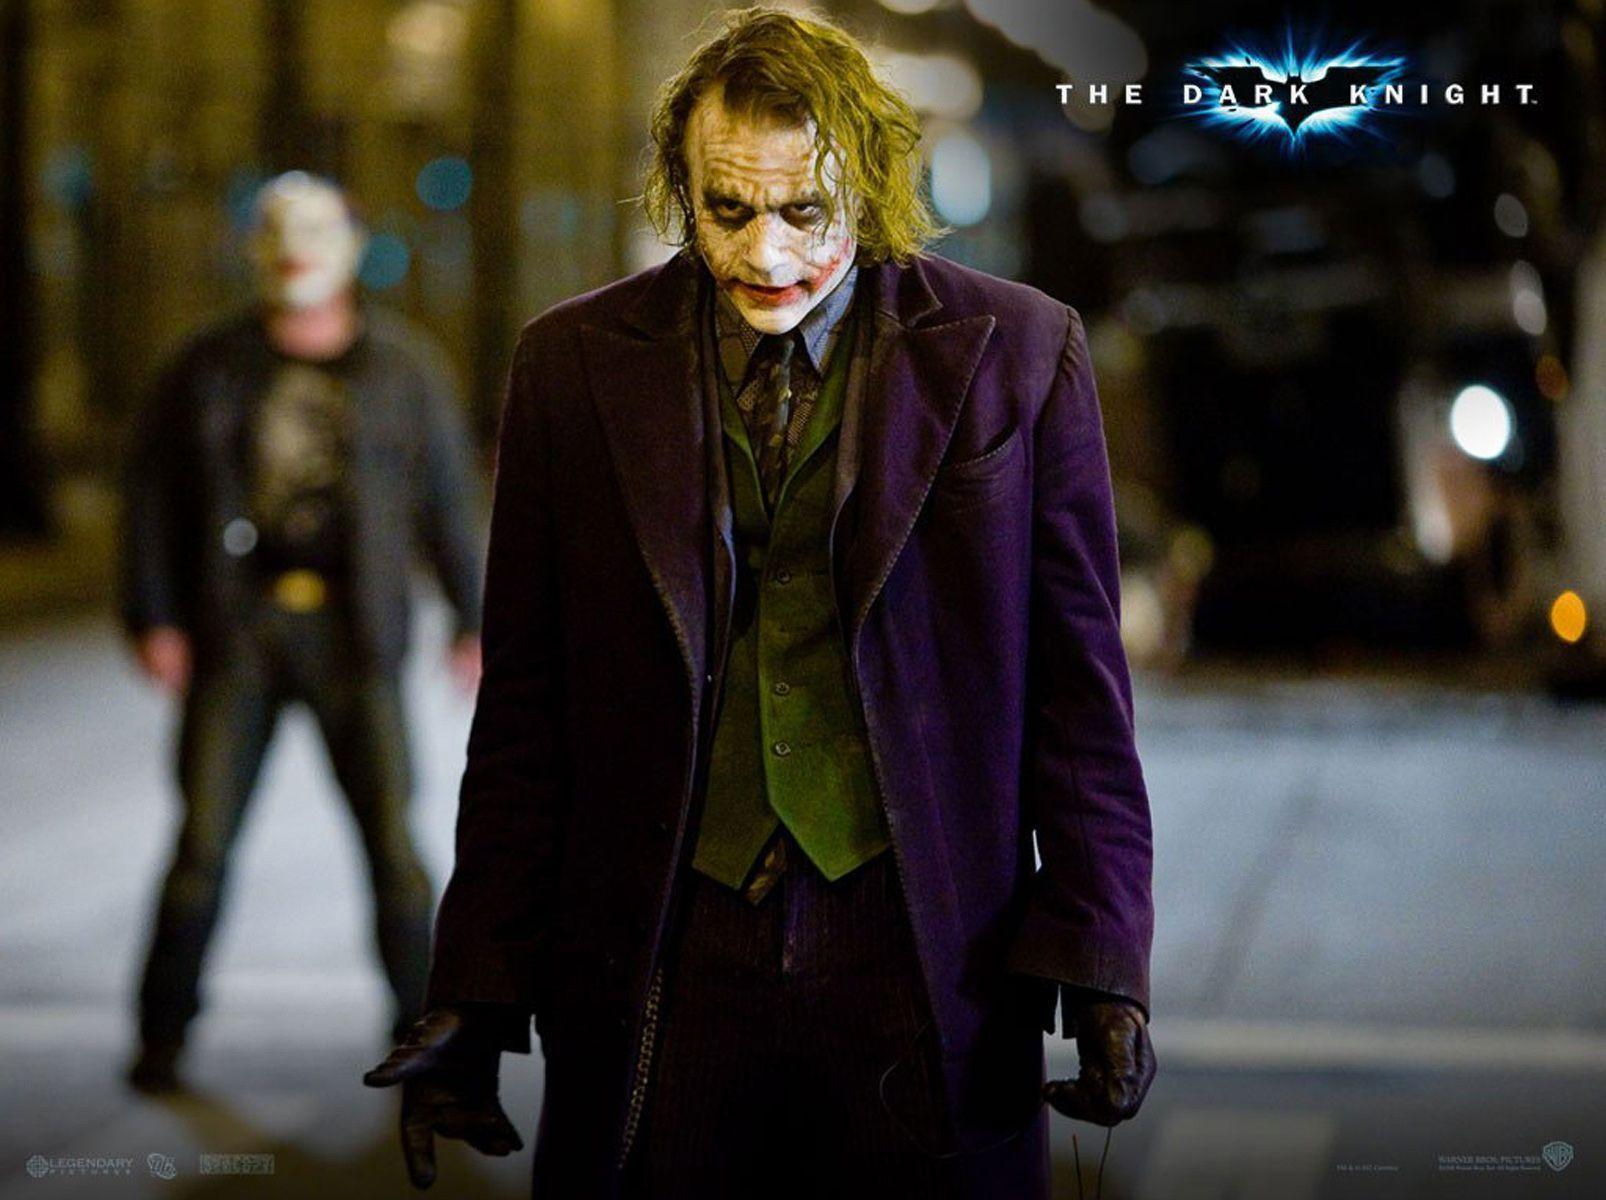 Joker in the Dark Knight HQ Wallpaper Download | DC Wallpapers